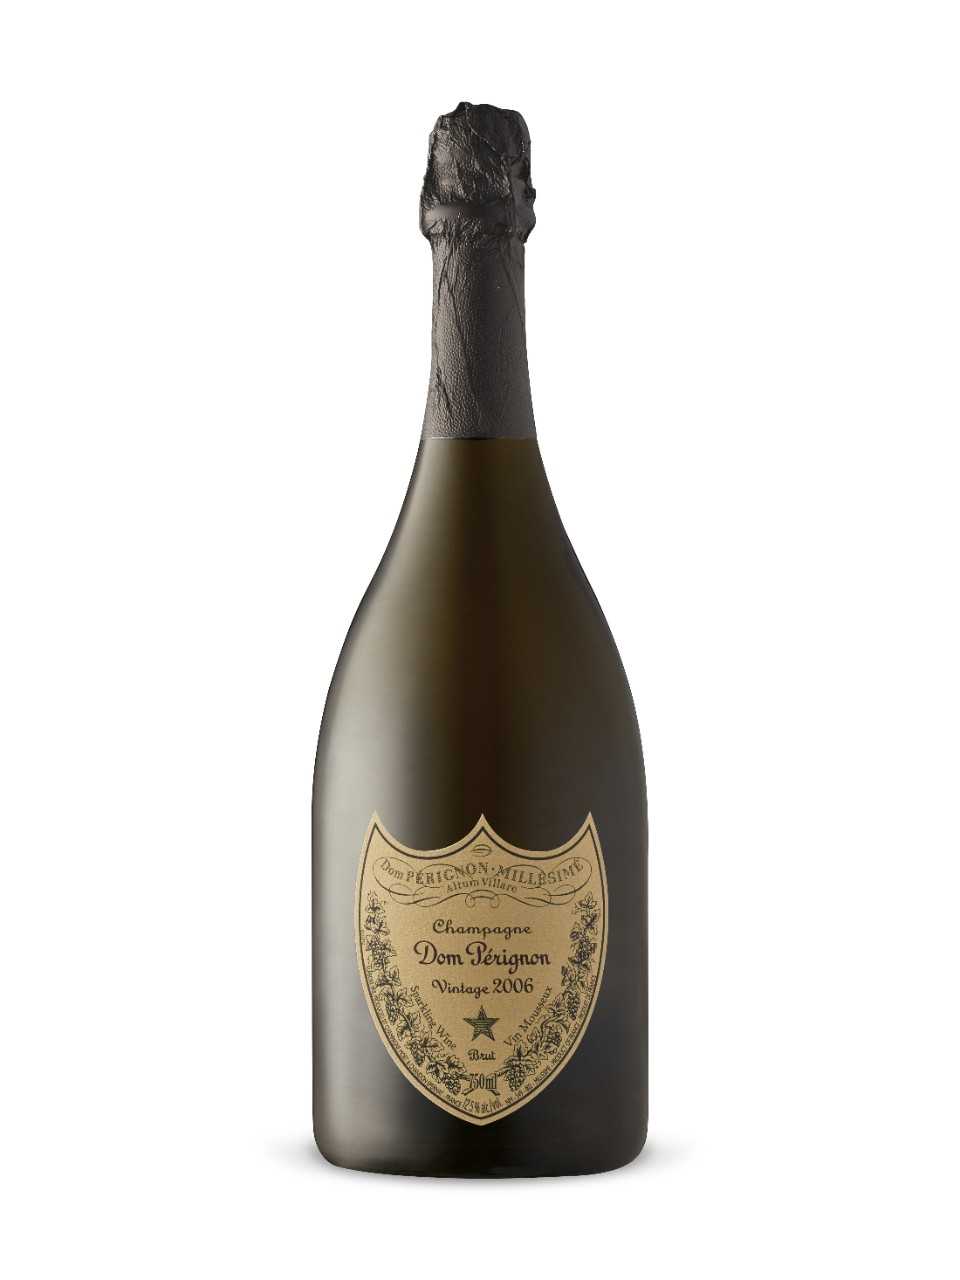 """Dom Perignon, otherwise known as """"the godfather of champagnes"""" is the cheapest liquor mixed in this cocktail sitting at $400-$500 a bottle."""